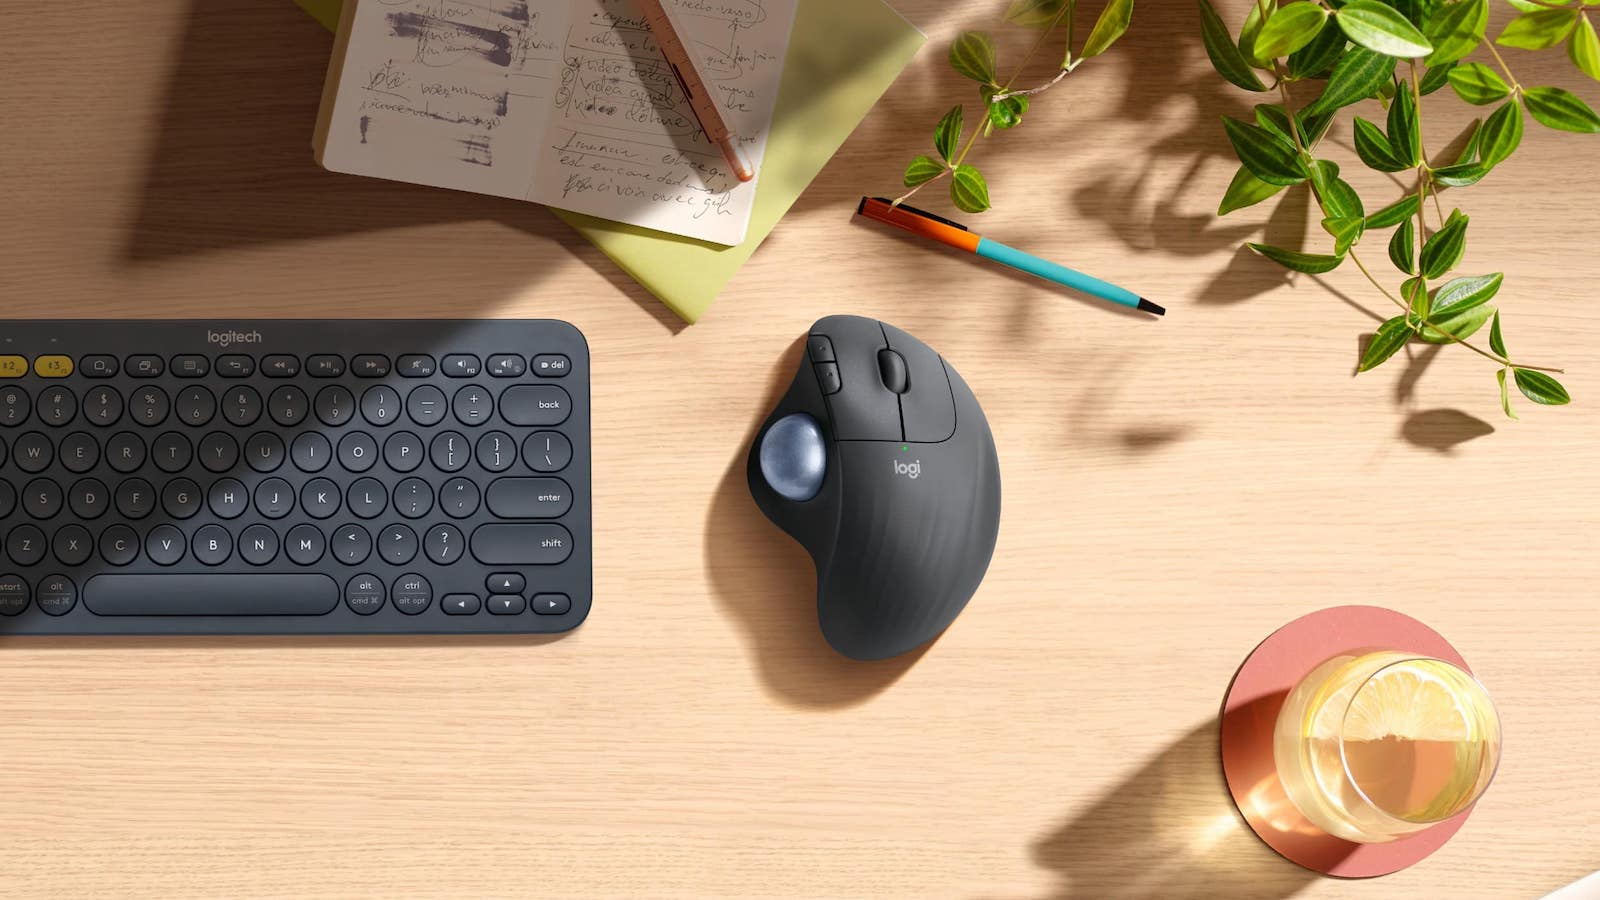 Logitech ERGO M575 wireless mouse has a trackball and an ergonomic shape